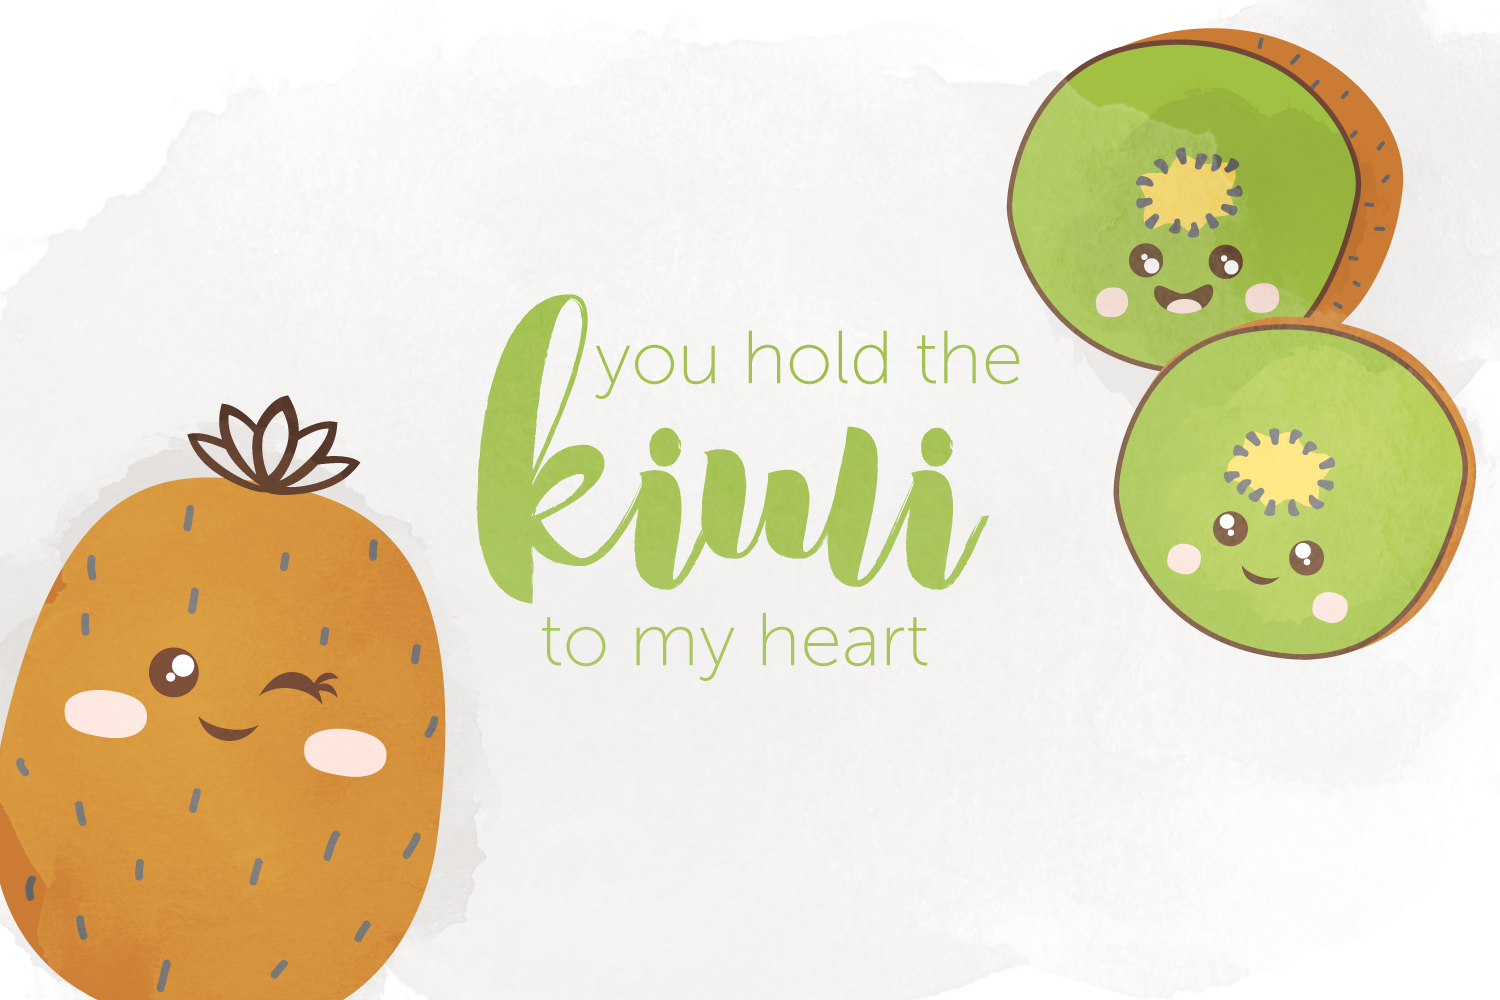 fruit pun kiwi